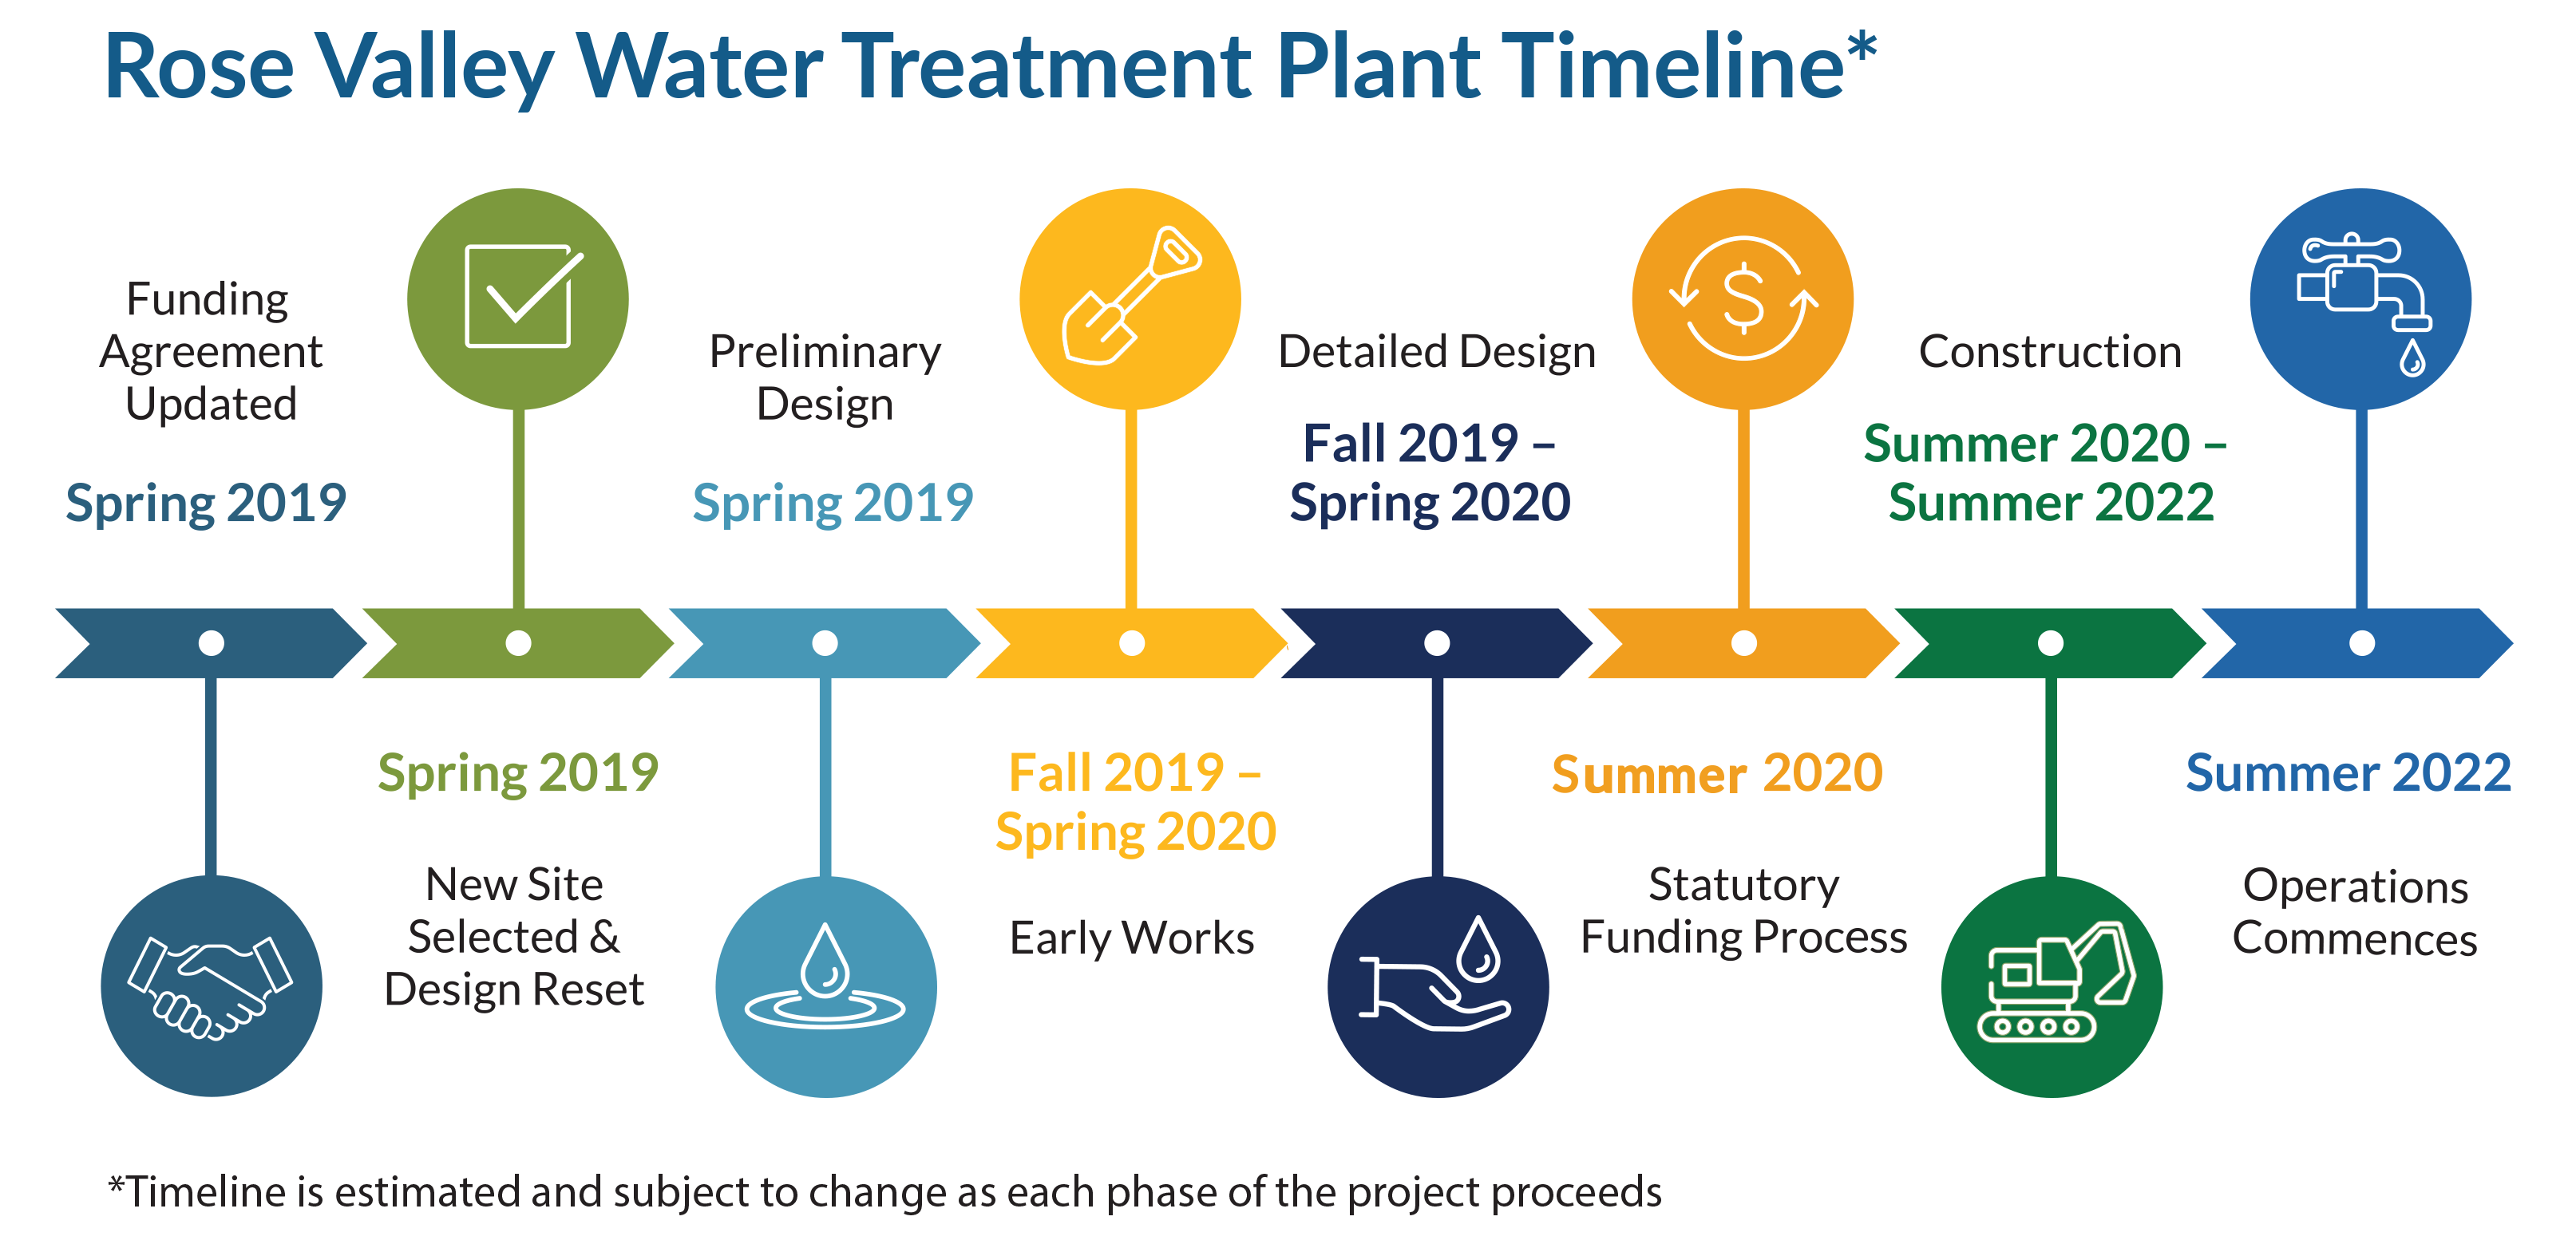 Rose Valley Water Treatment Plant timeline